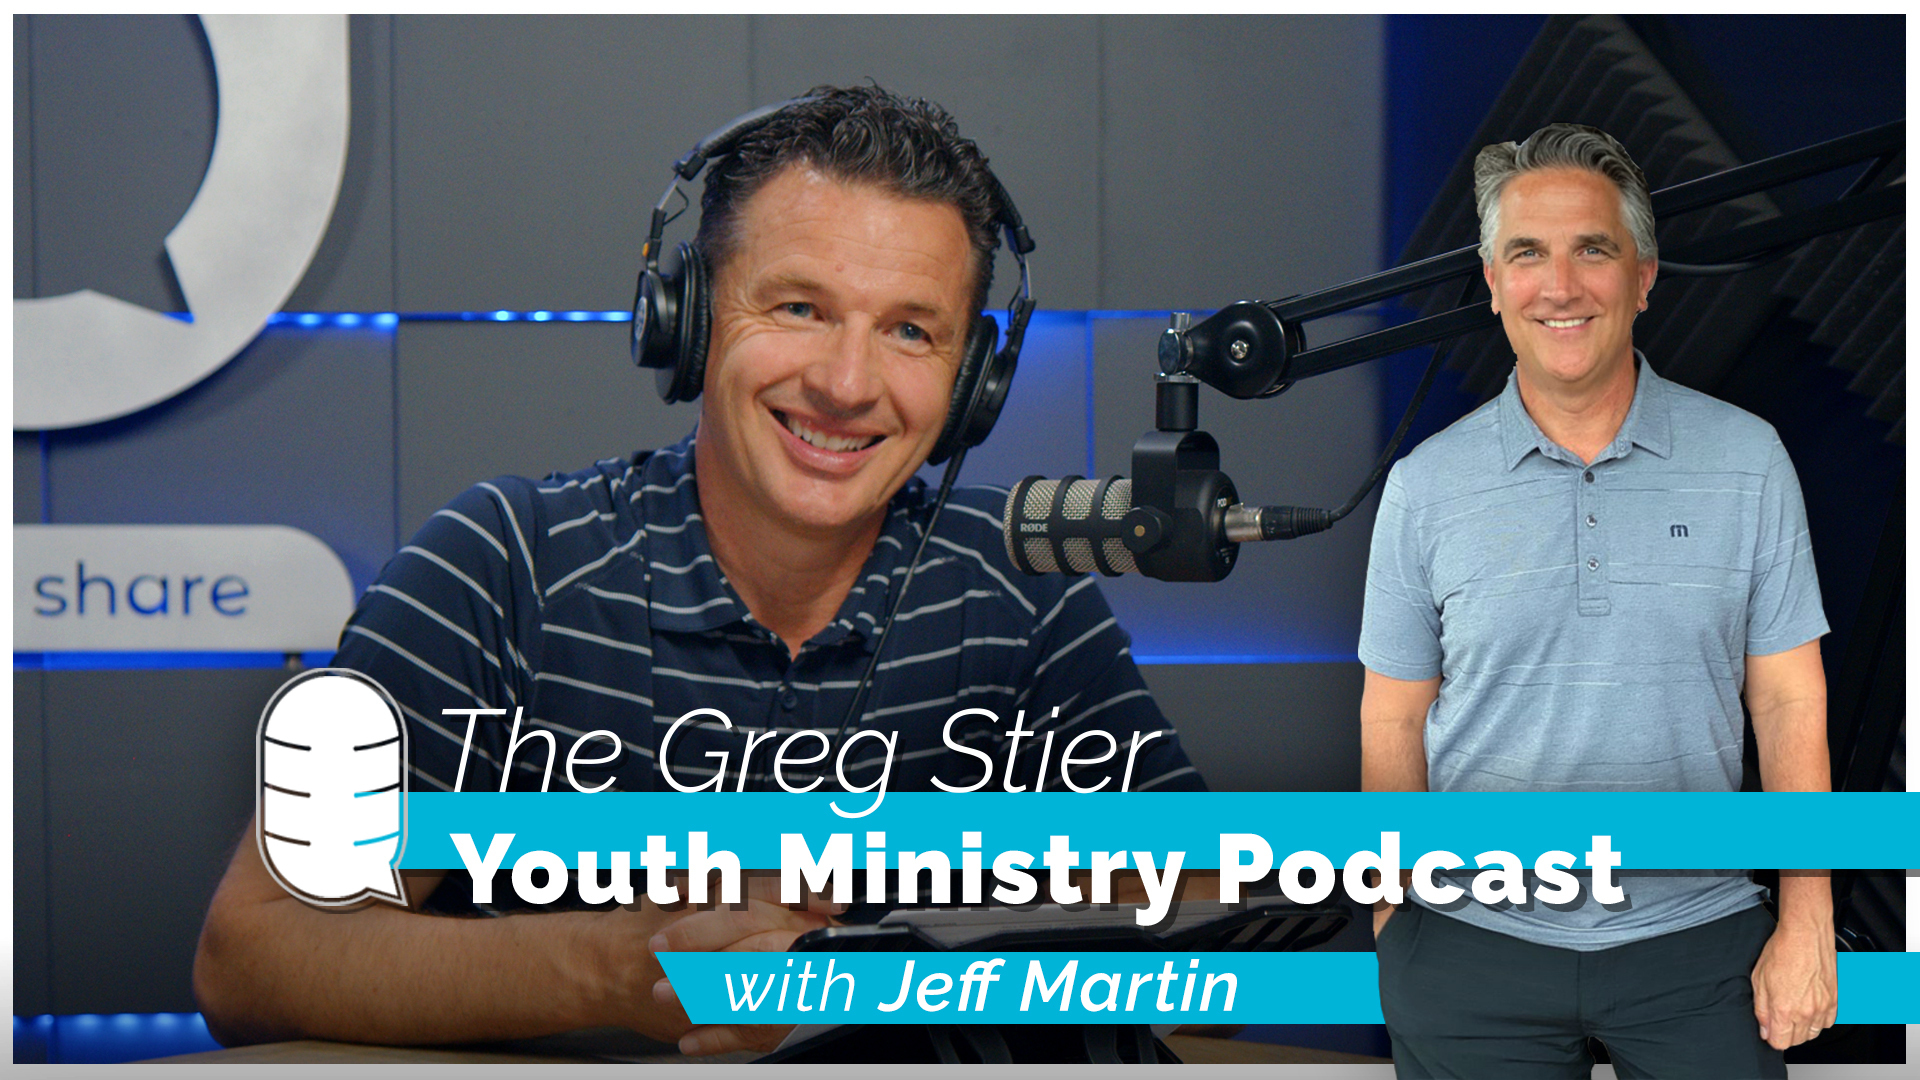 Greg Stier Youth Ministry Podcast with Jeff Martin